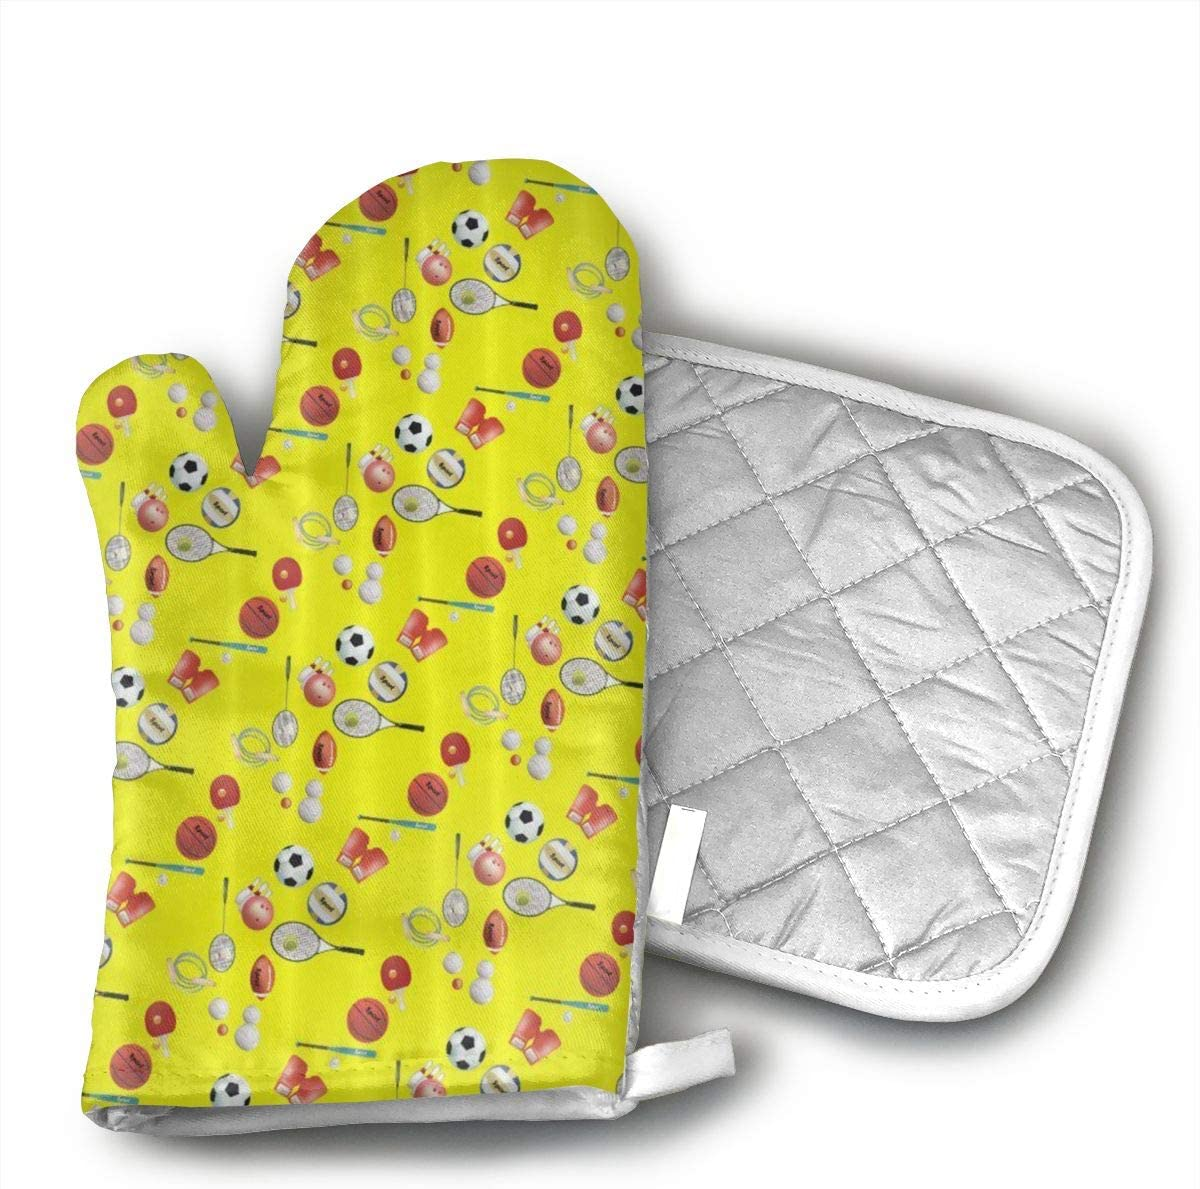 Party of Ball Baseball Tennis Soccer Bowling Oven Mitts and Potholders Heat Resistant Set of 2 Kitchen Set Non-Slip Grip Oven Gloves BBQ Cooking Baking Grilling